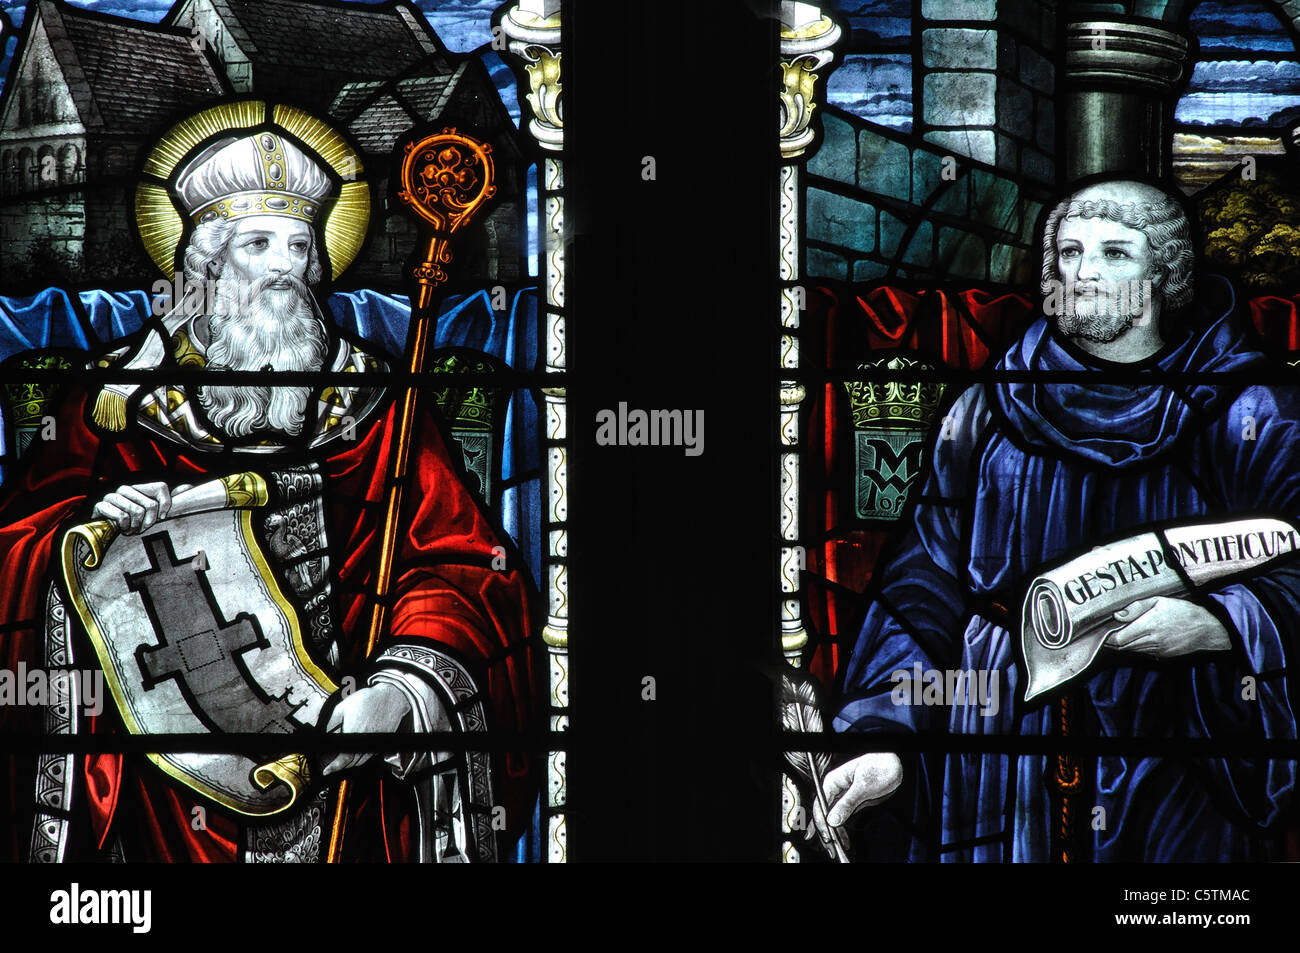 Stained glass of St. Aldhelm and William of Malmesbury, Malmesbury Abbey, Wiltshire, England, UK Stock Photo